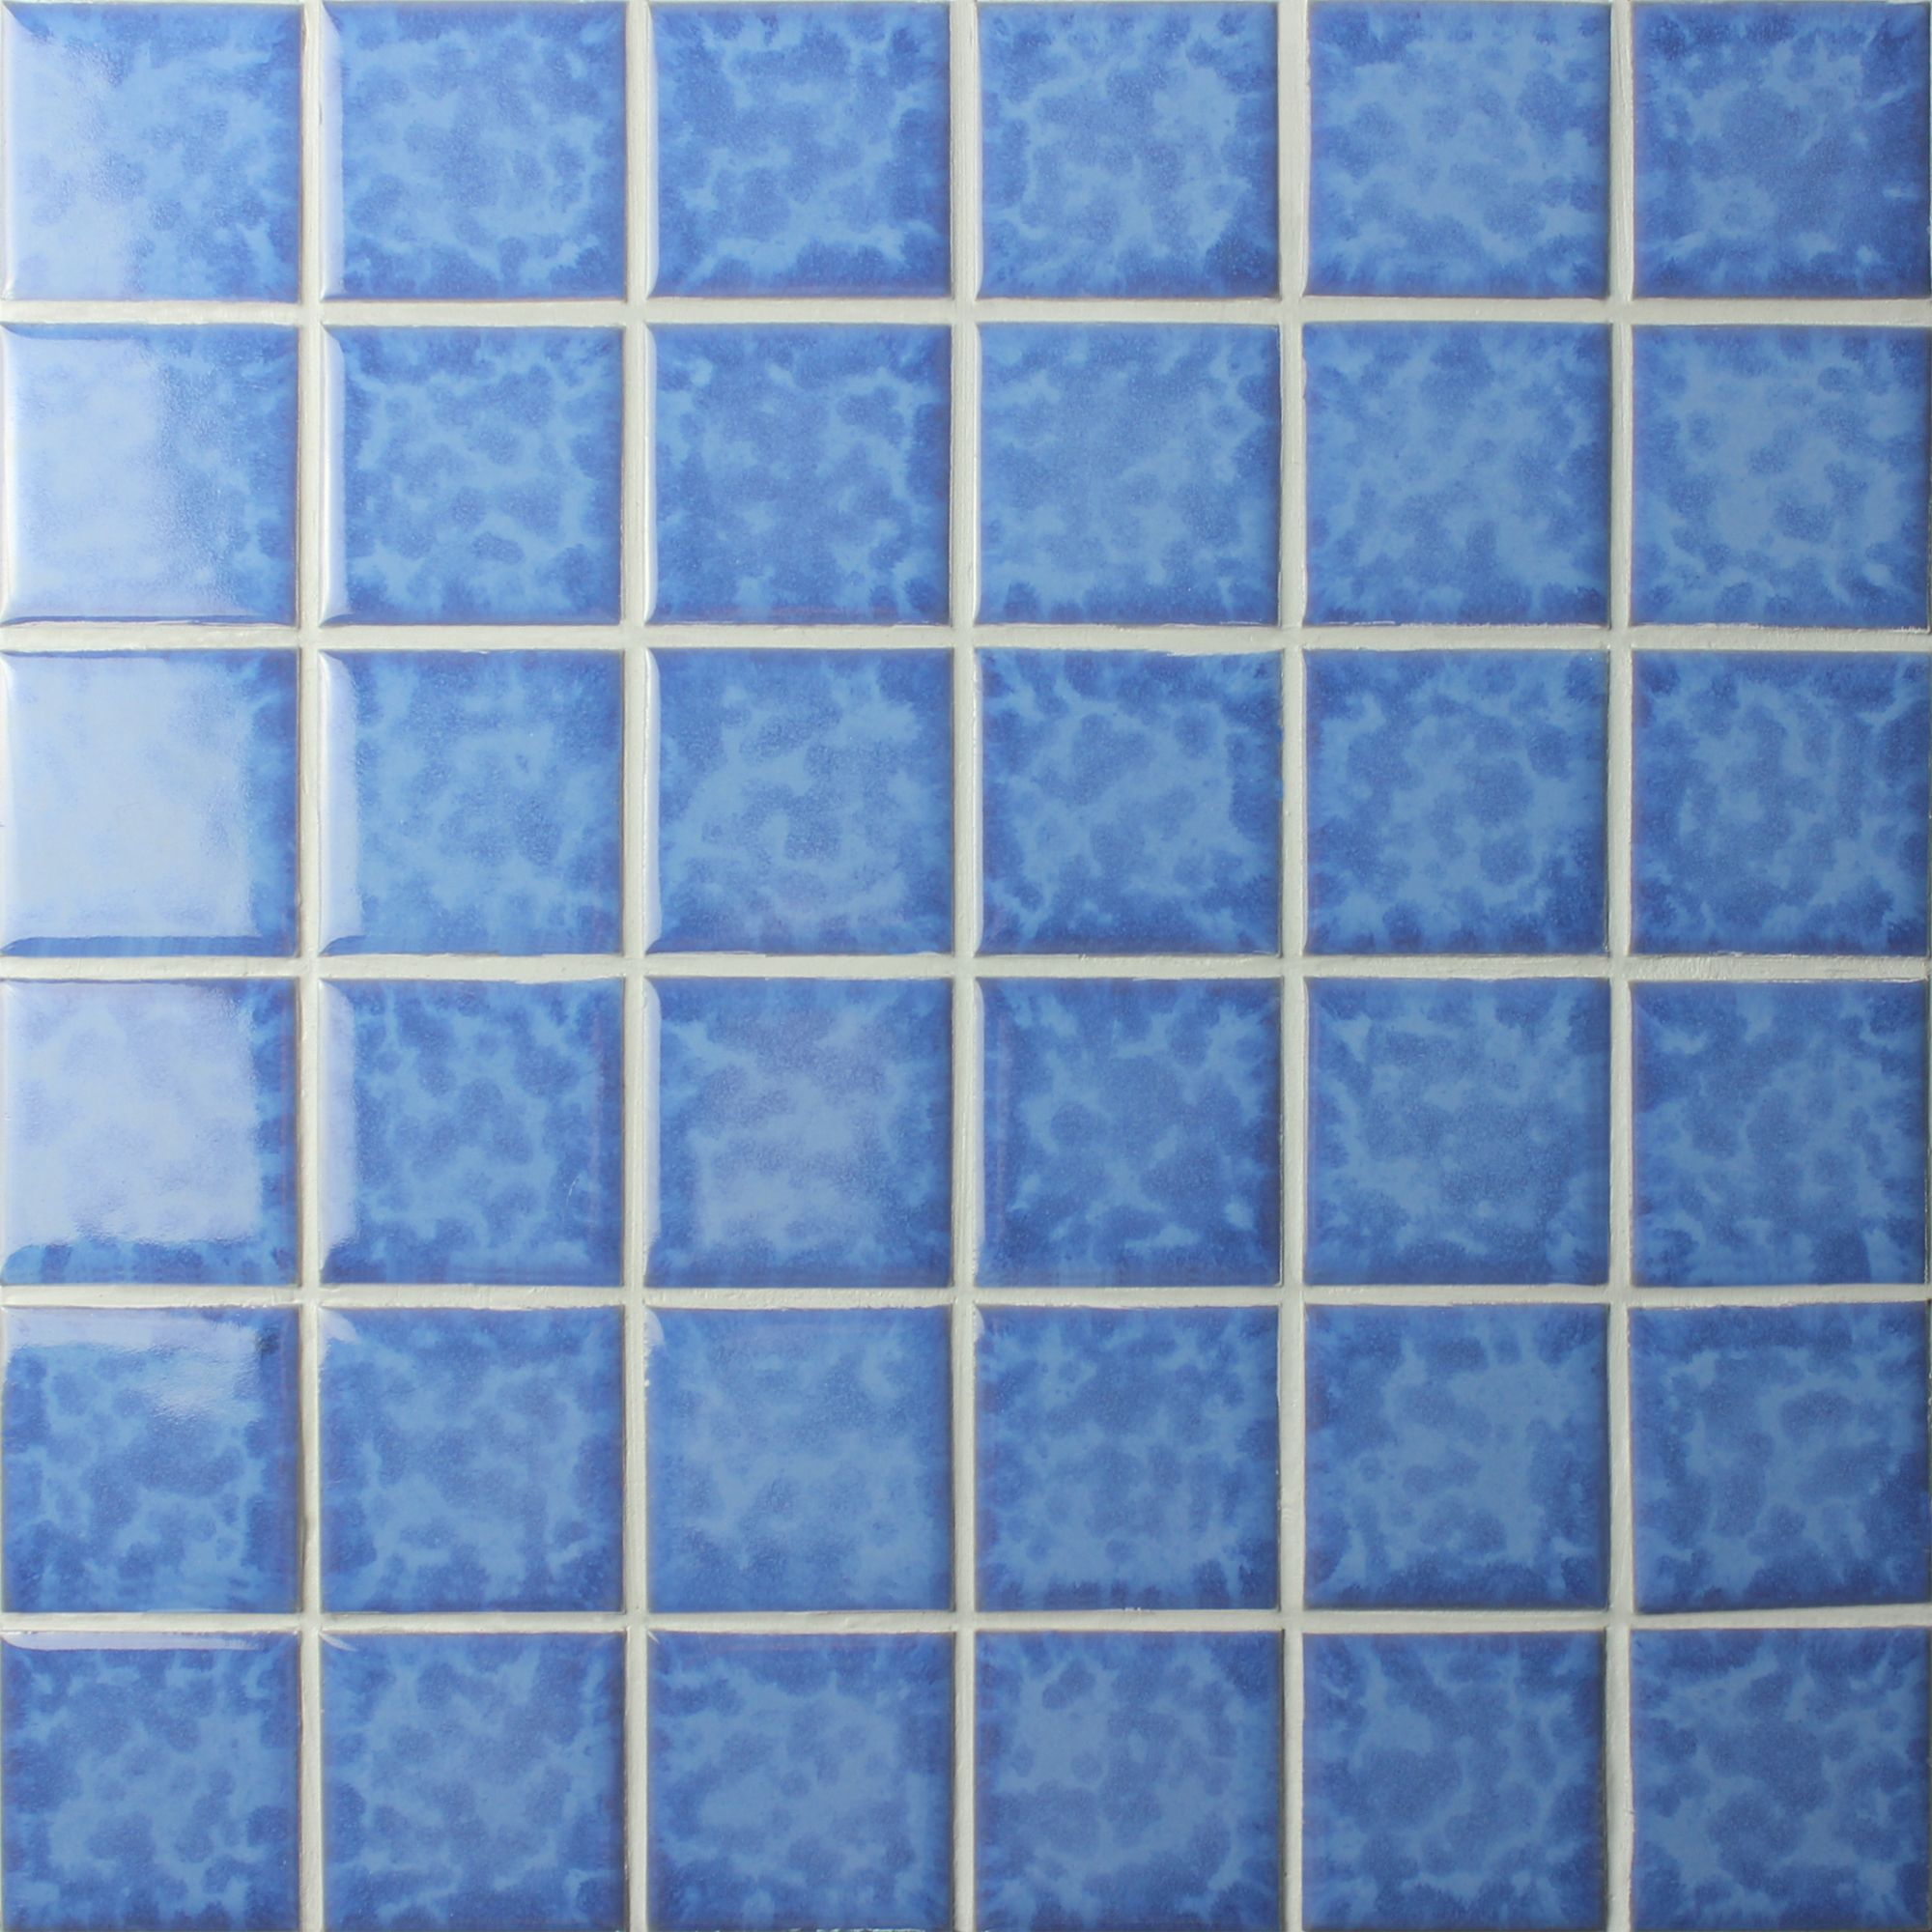 Smooth Texture And High Gloss Bluwhaletile Blue Mosaic Tiles Are